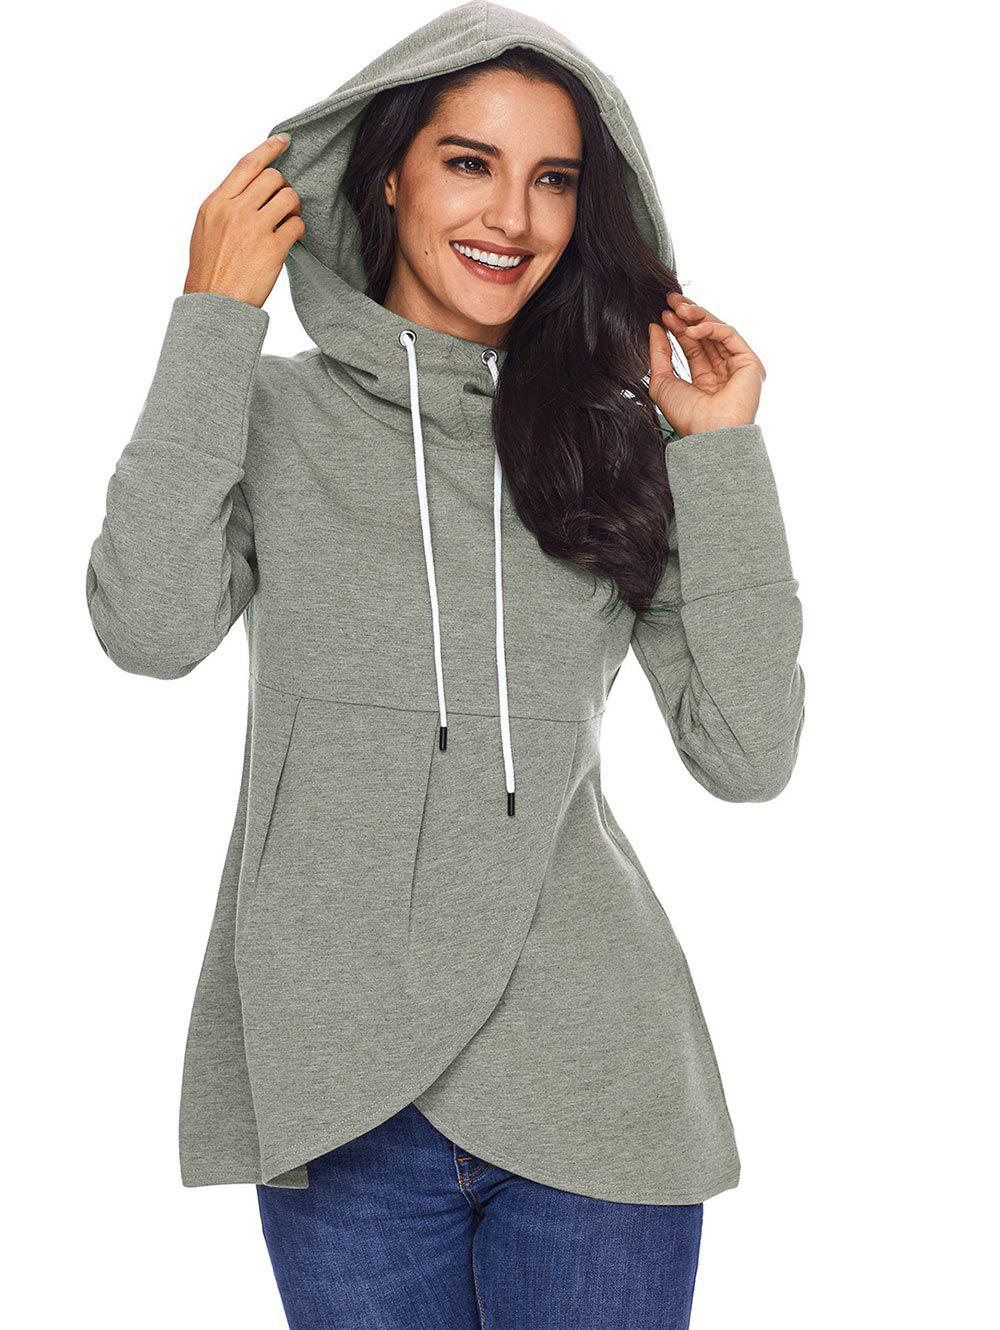 Overlap Pullover Drawstring Hoodie - GRAY 2XL